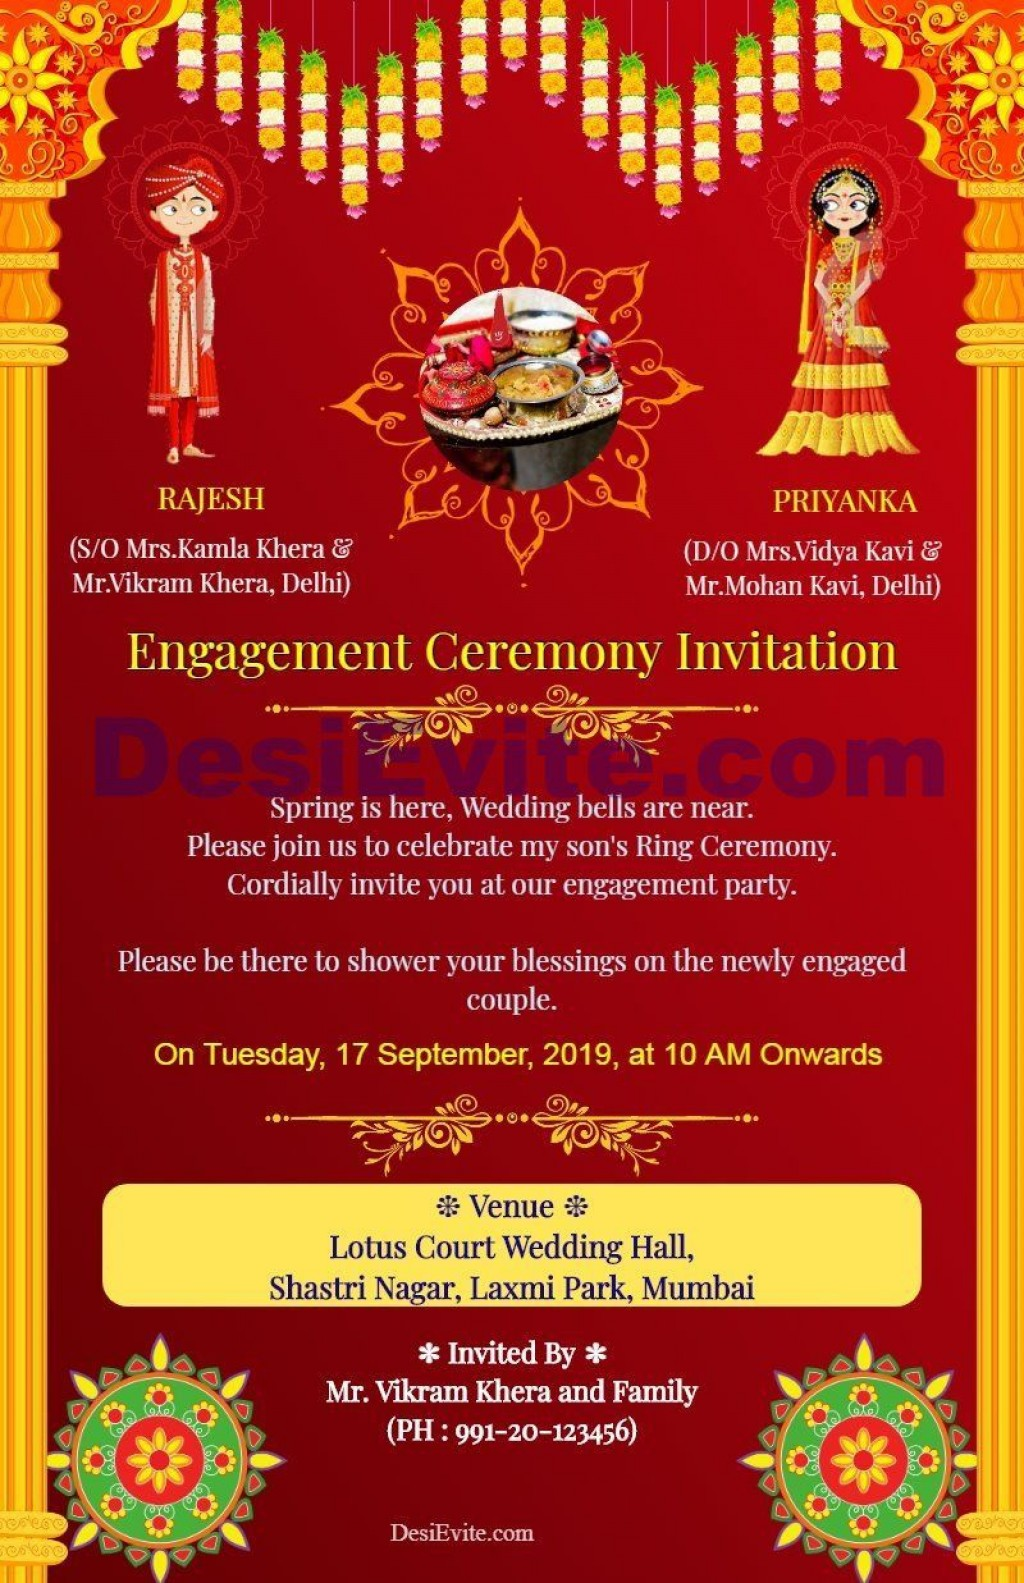 004 Rare Free Online Indian Invitation Template Picture  Templates Engagement Card Maker WeddingLarge